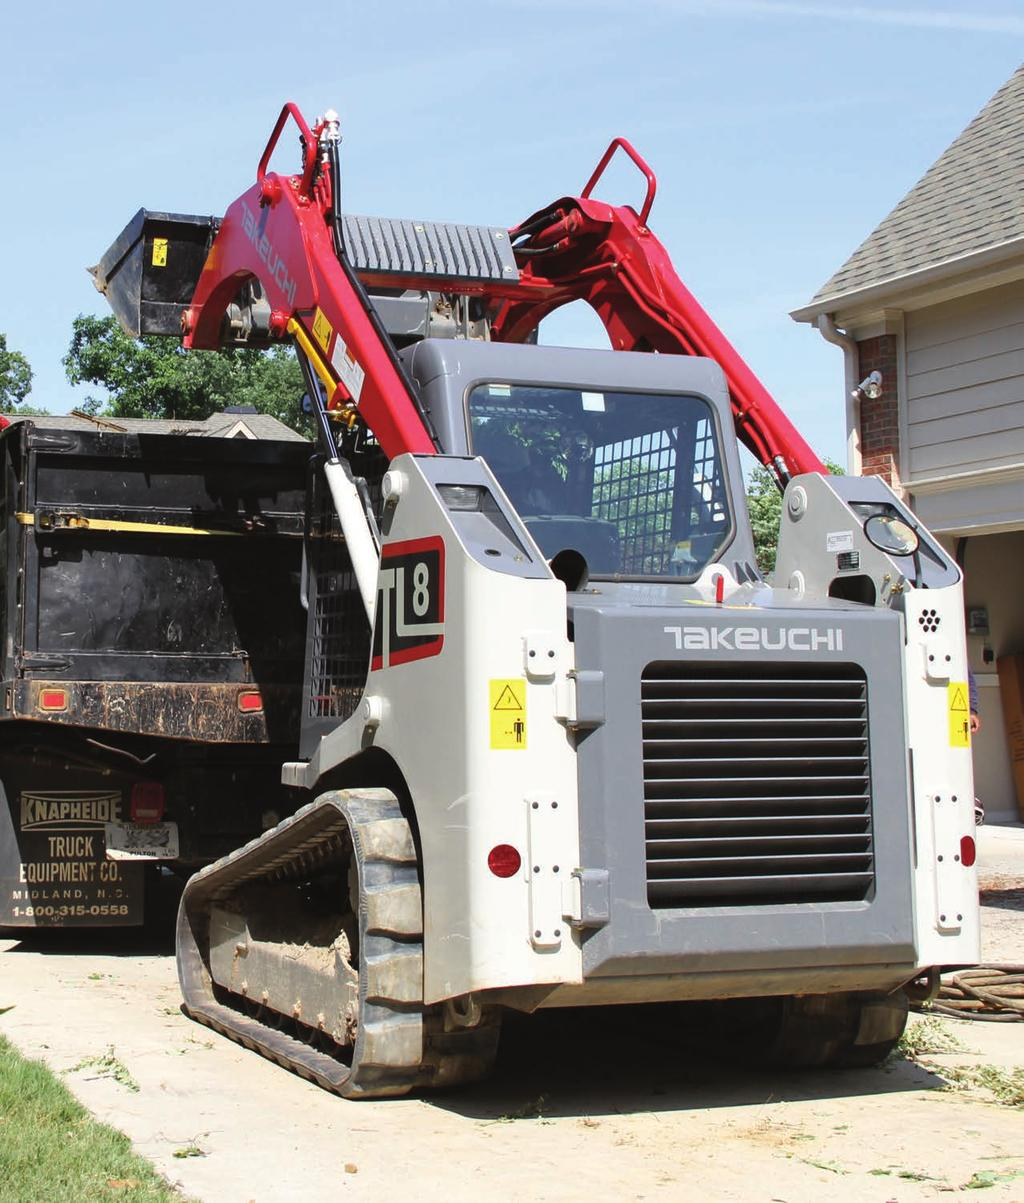 Wheel Loaders 2016 Takeuchi Manufacturing (U.S.), Ltd. All Rights Reserved. Printed in the U.S.A. In accordance with our established policy of continued improvement, specifications and features are subject to change without notice.